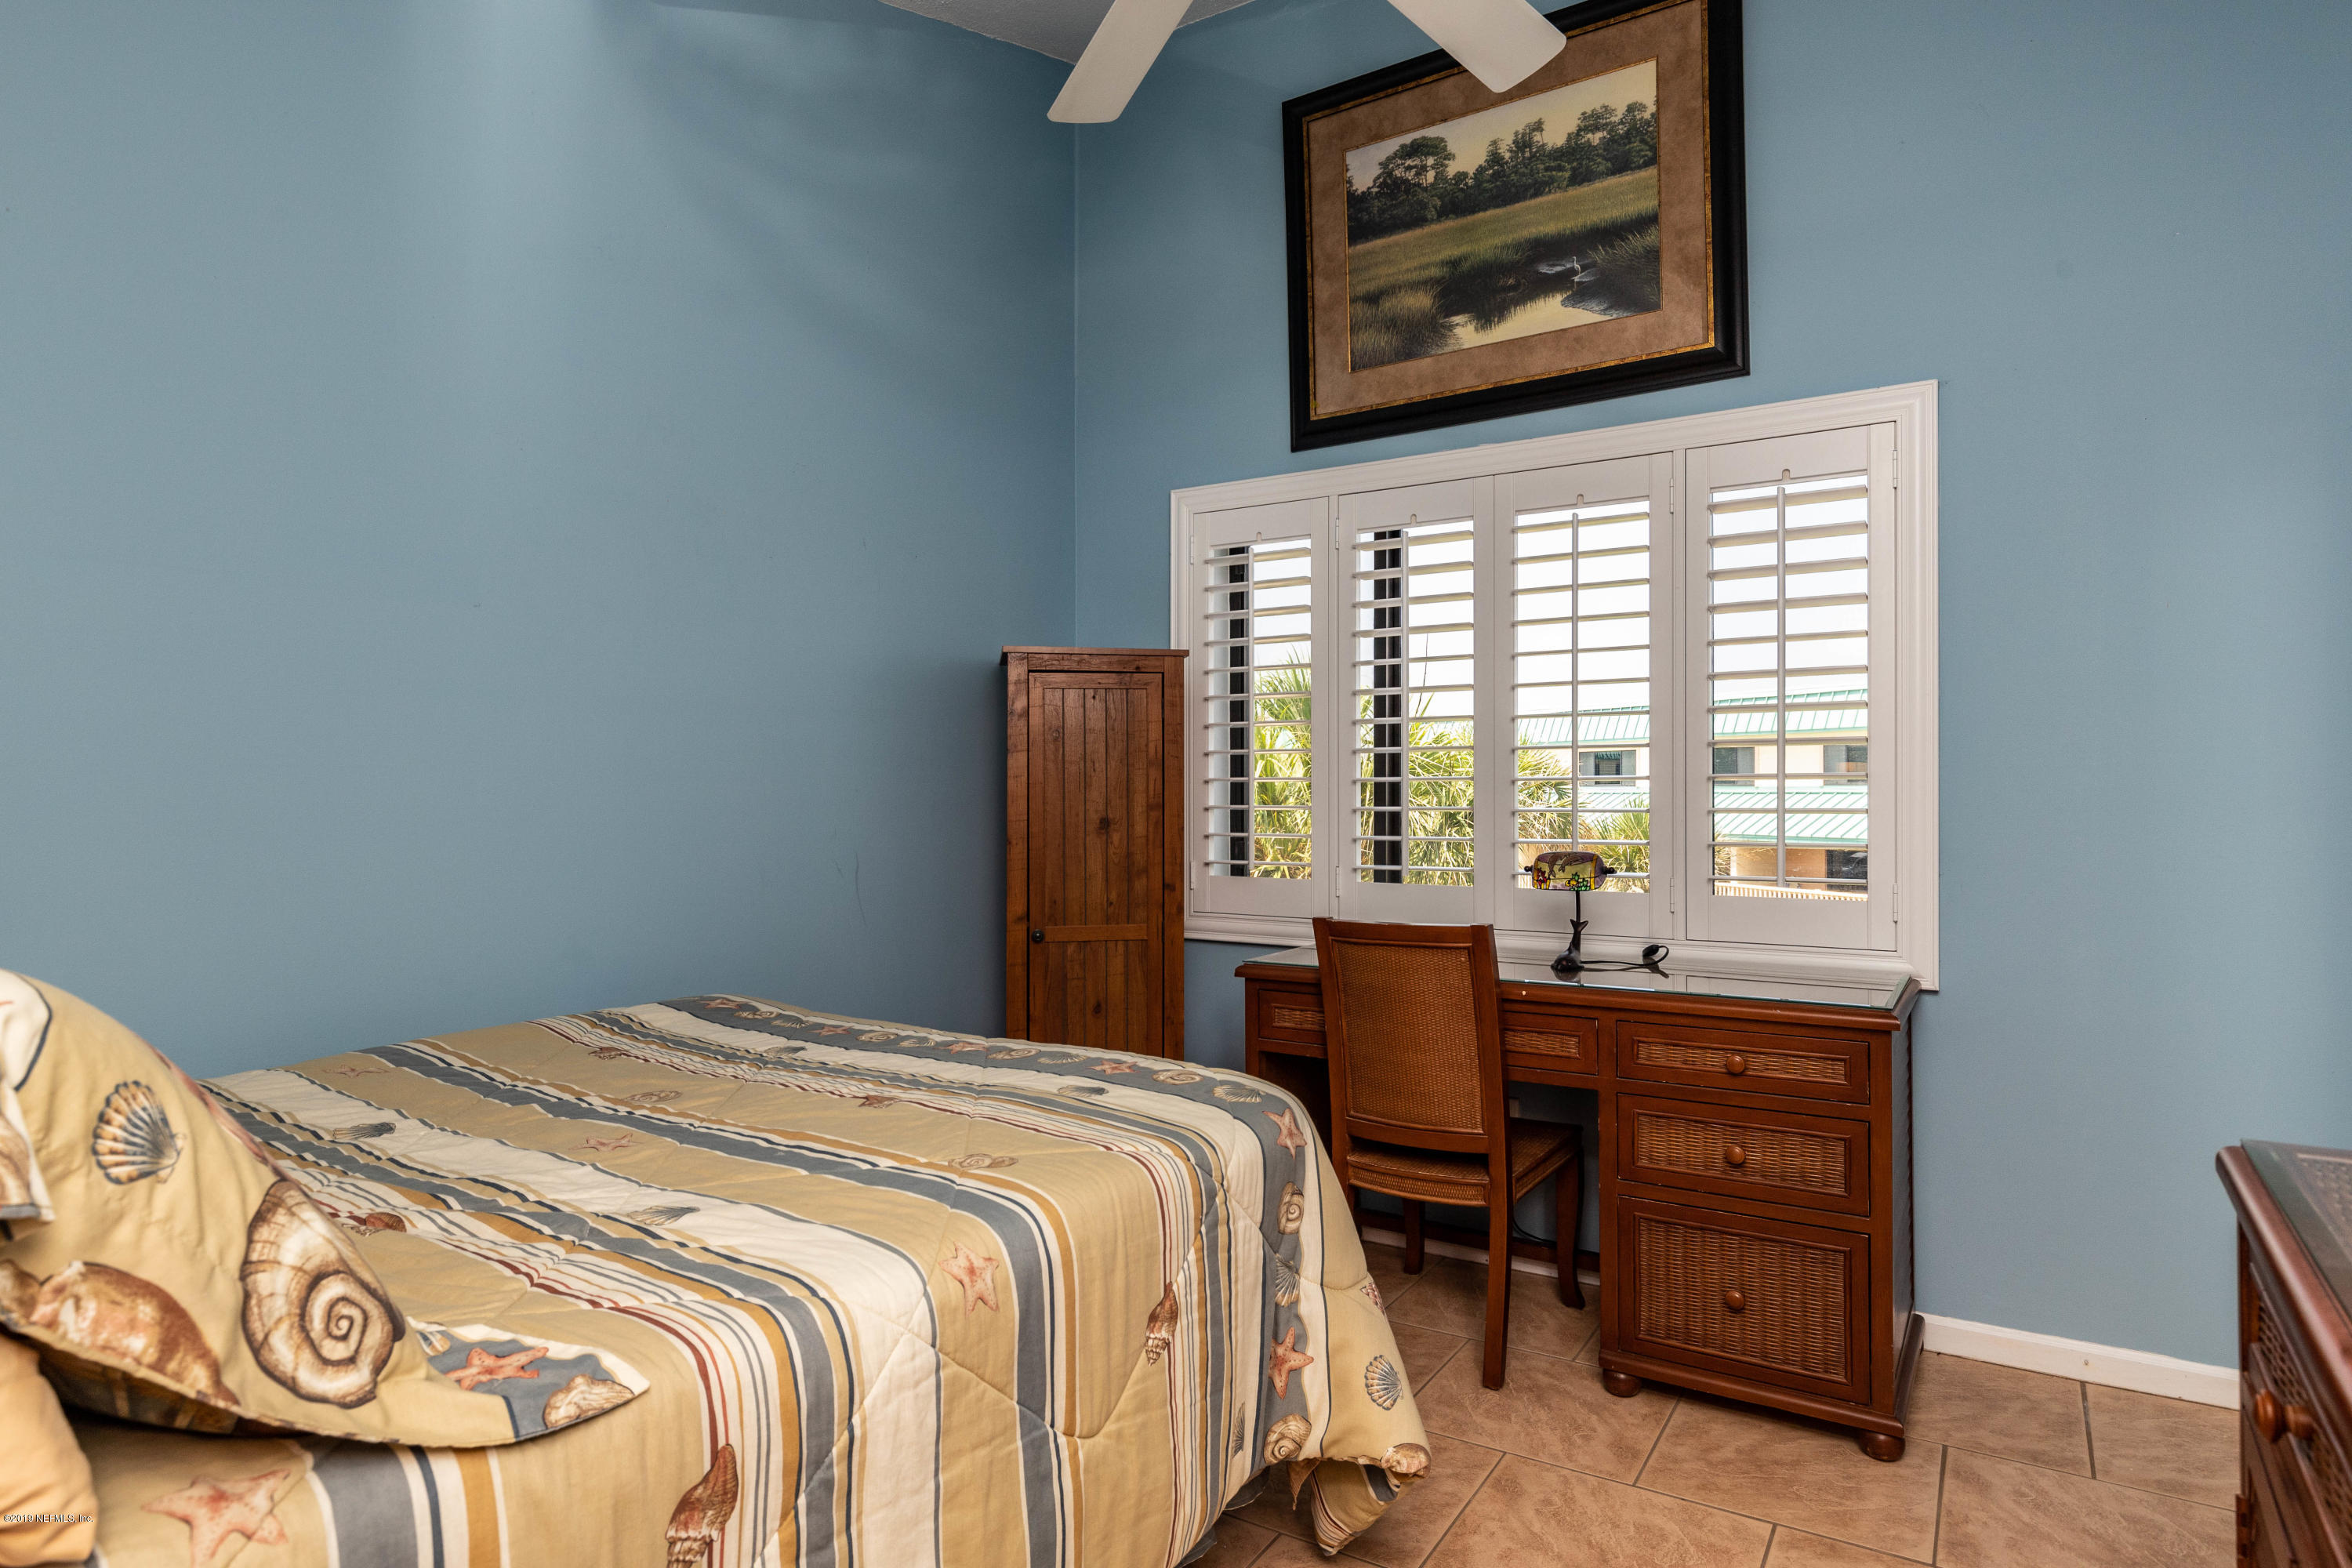 6100 FLORIDA A1A, ST AUGUSTINE, FLORIDA 32080, 2 Bedrooms Bedrooms, ,2 BathroomsBathrooms,Condo,For sale,FLORIDA A1A,1004278